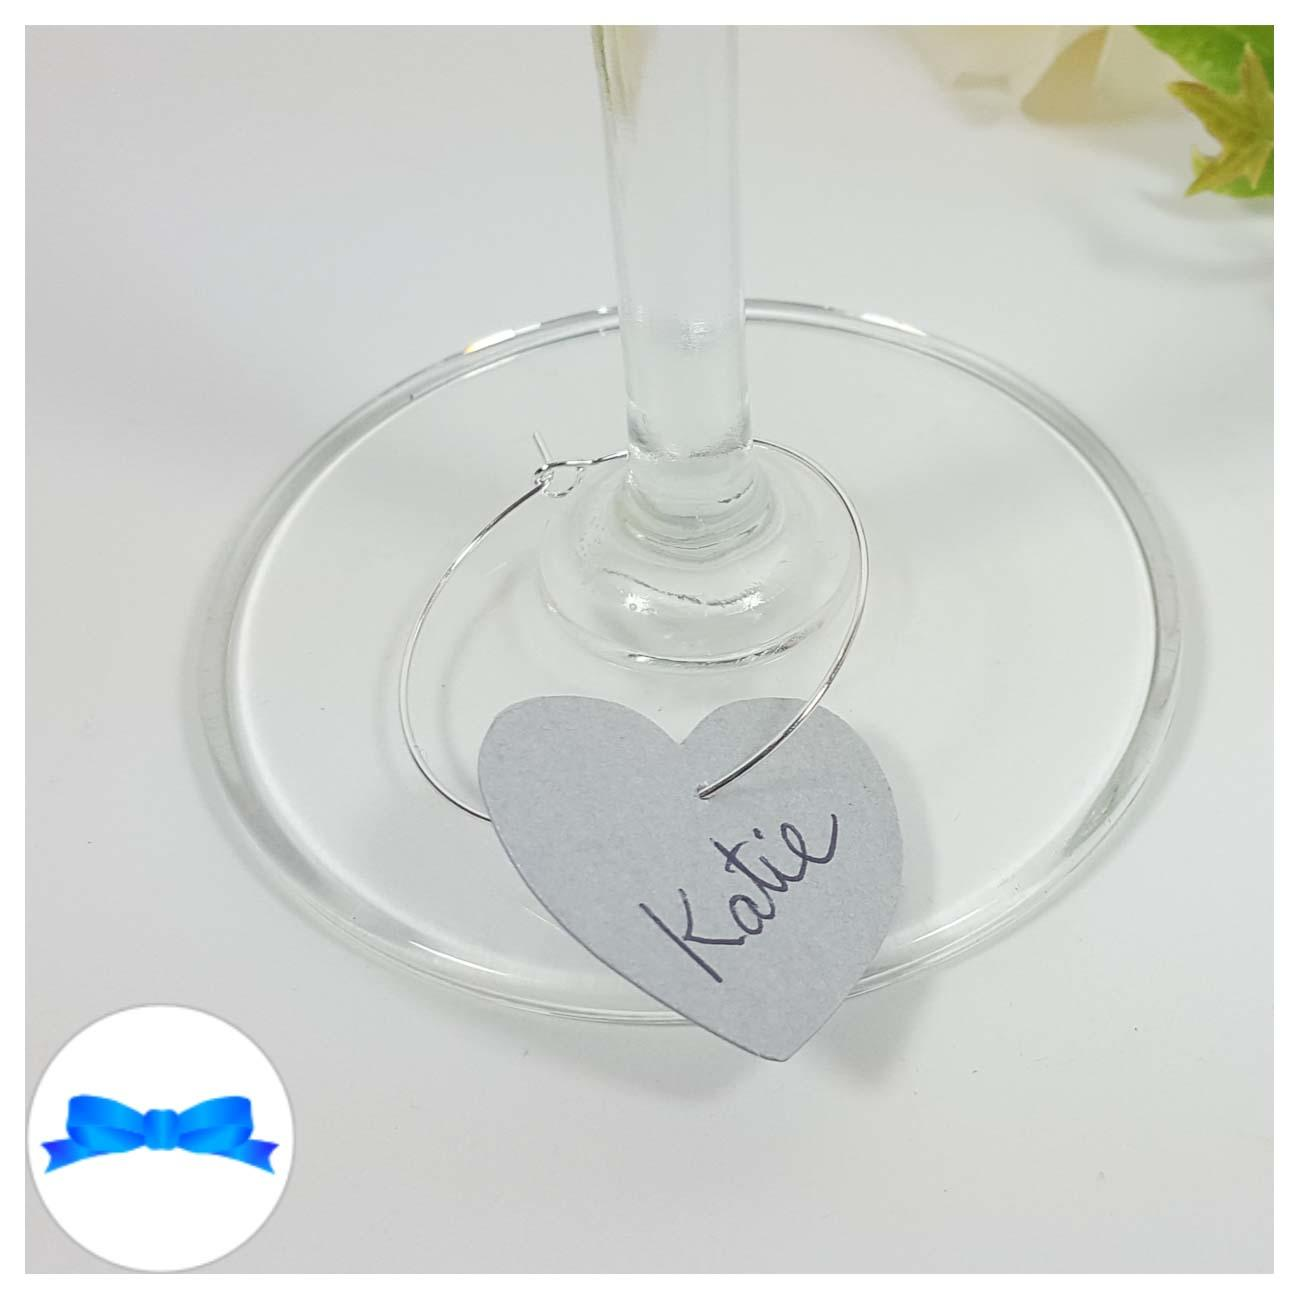 Silver heart shaped wine glass charm